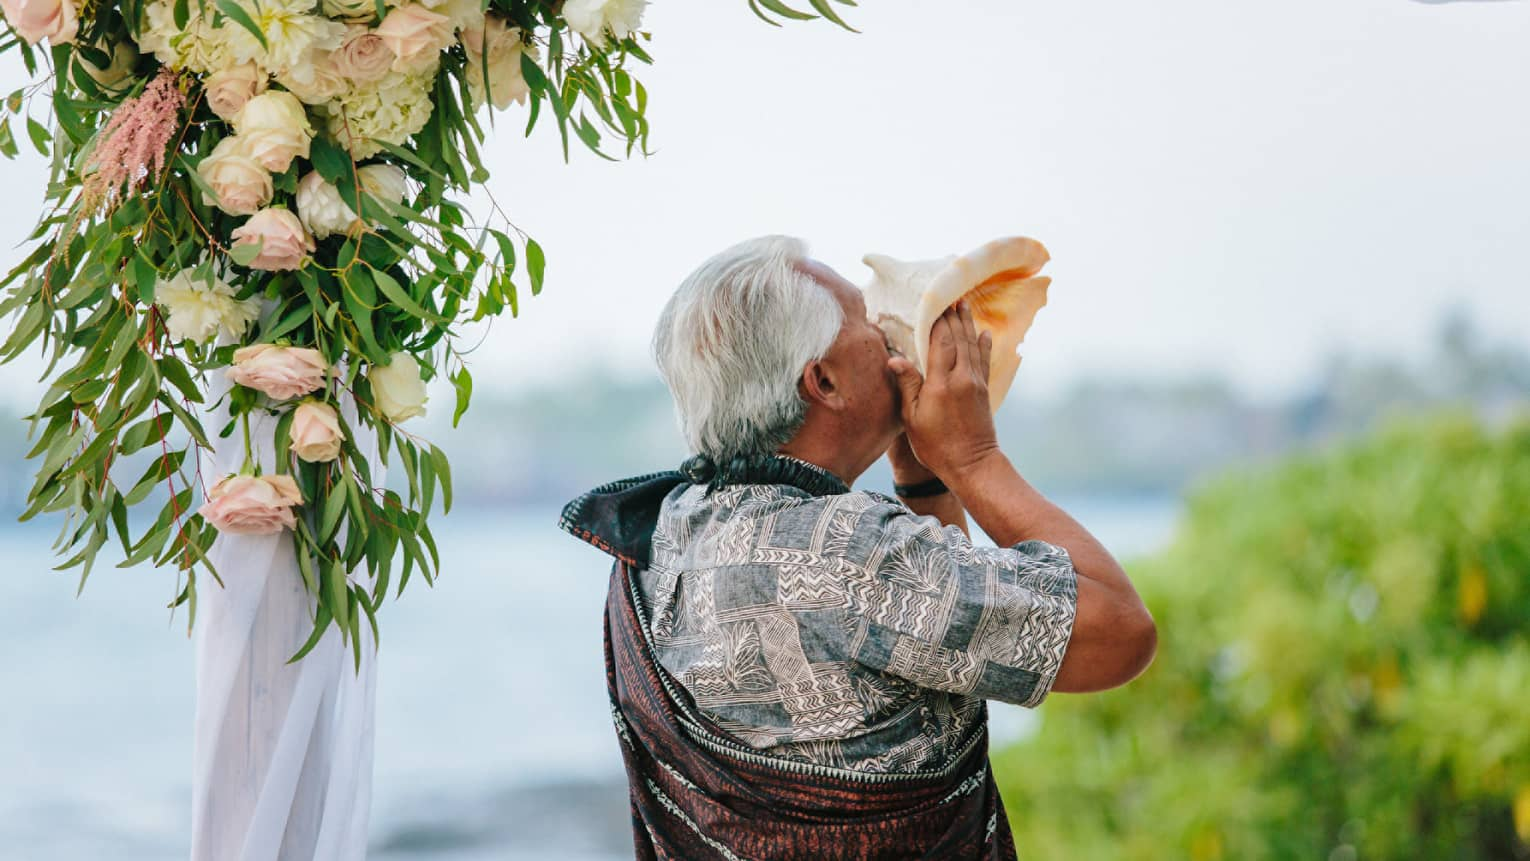 Man holds large seashell to lips at outdoor wedding ceremony